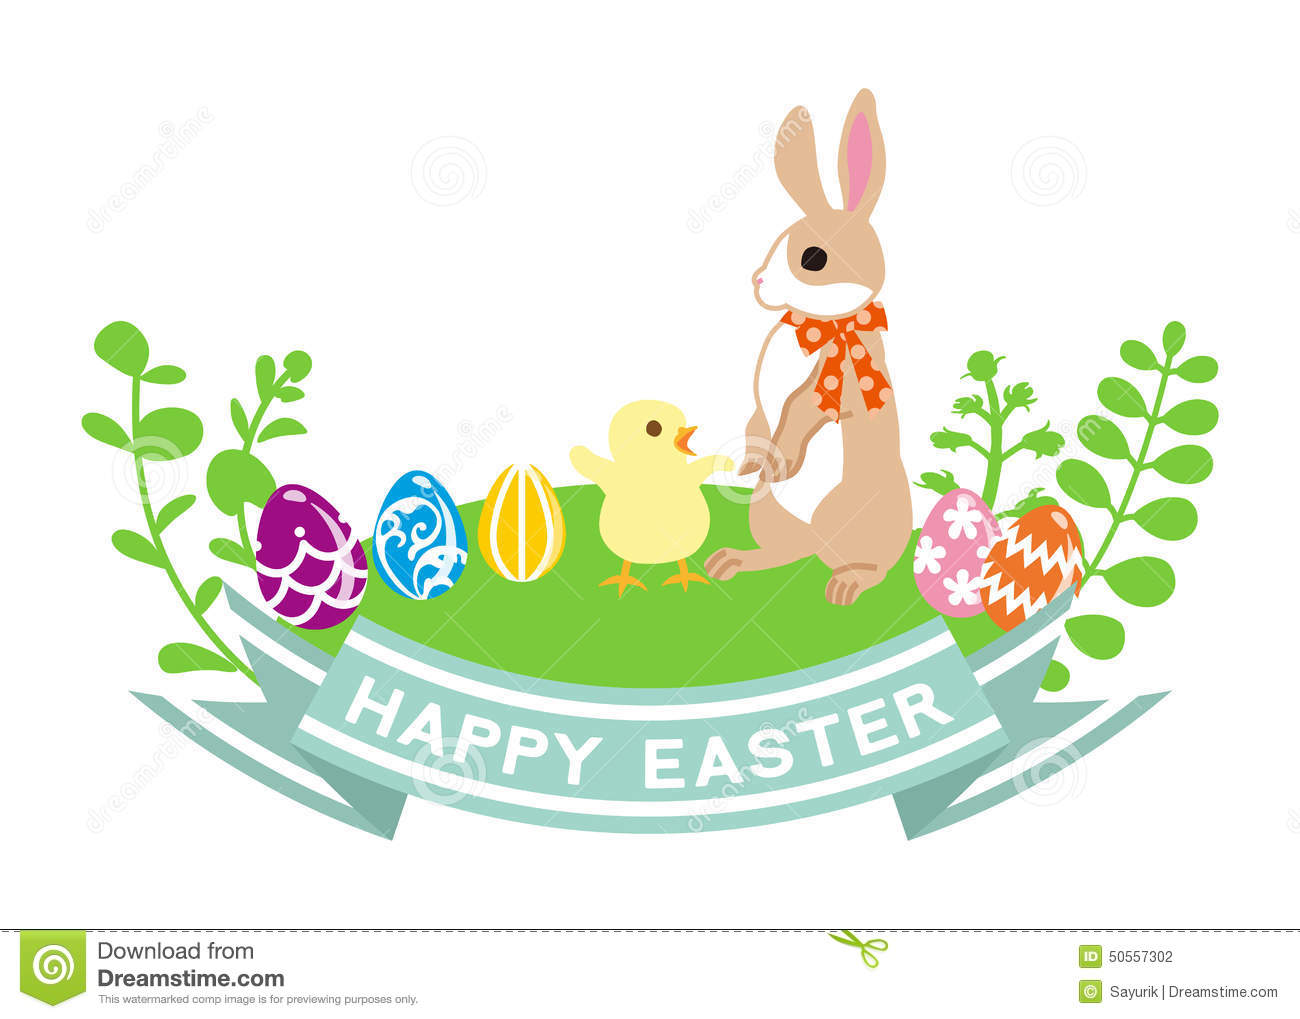 Easter Bunny And Chick-Clip Art Stock Vector - Image: 50557302